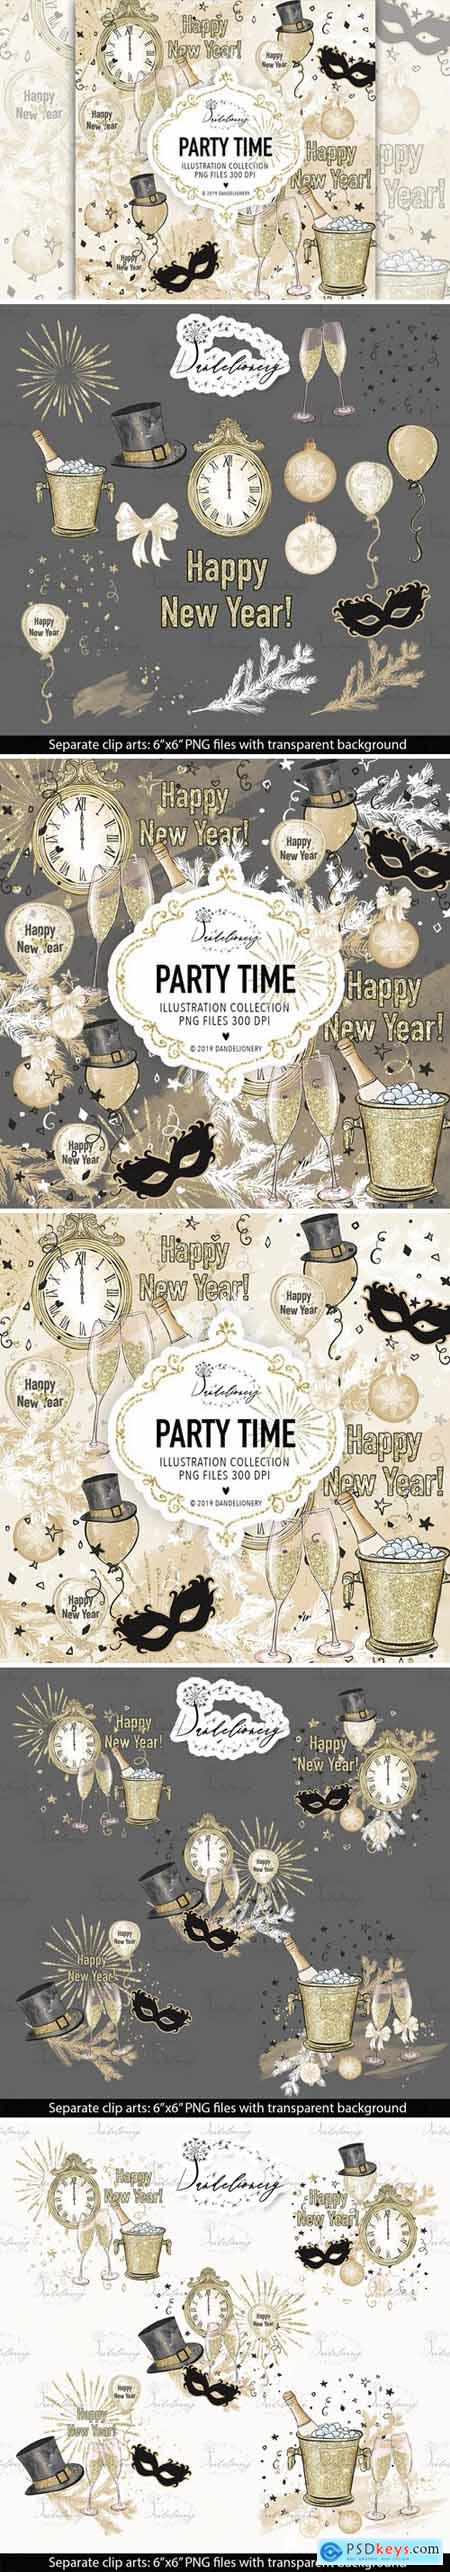 Party Time design